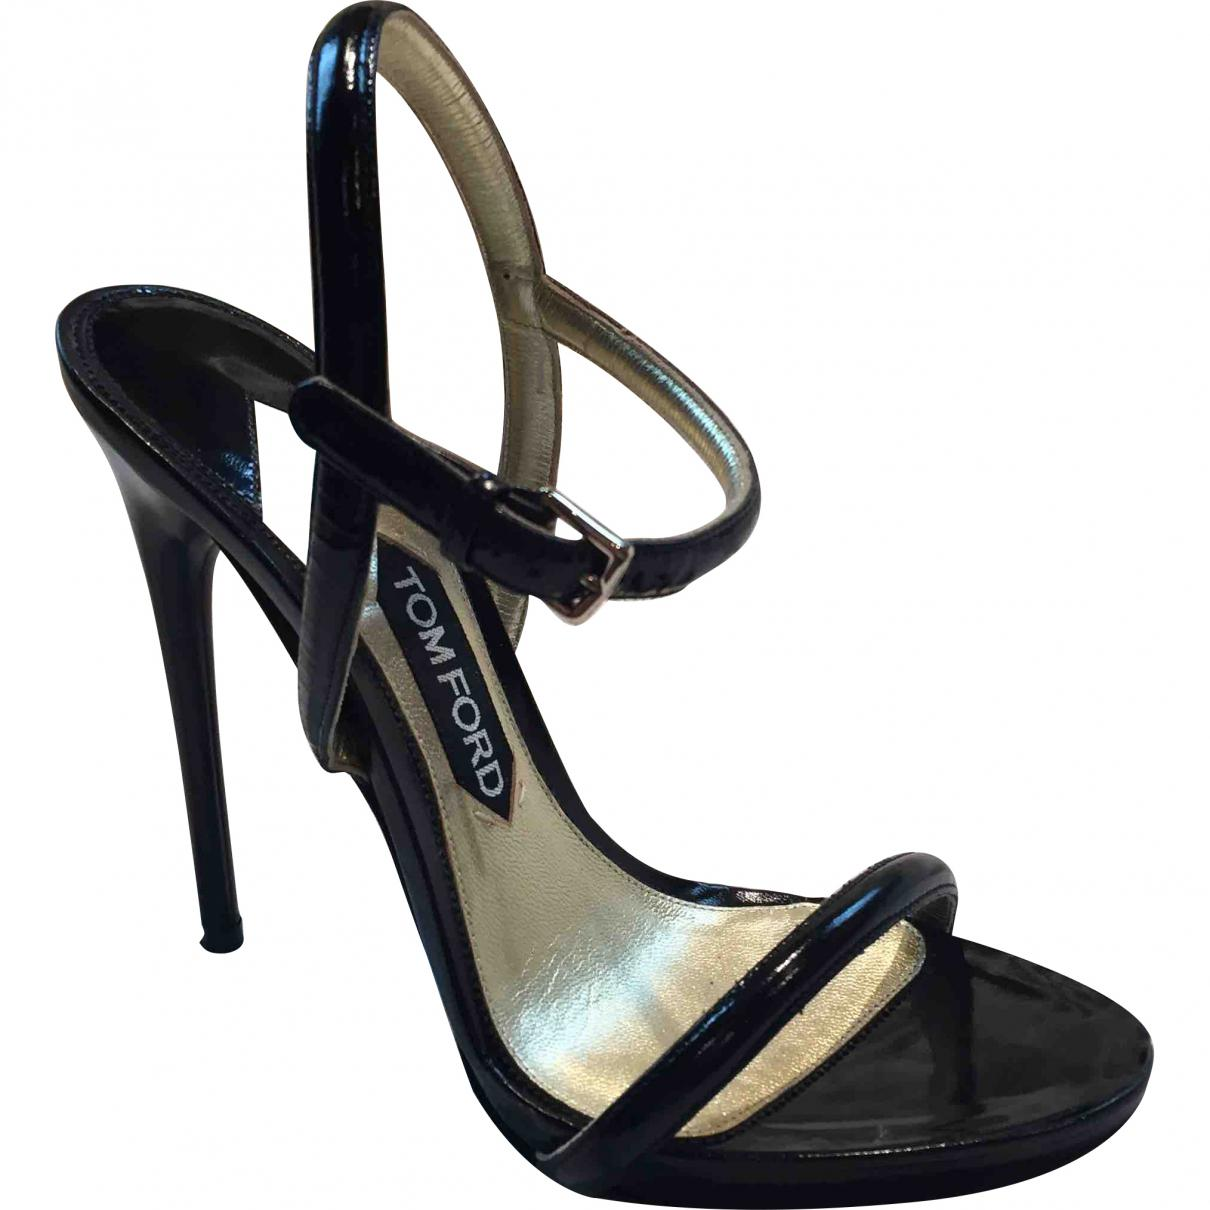 946ff509480 Lyst - Tom Ford Black Leather Sandals in Black